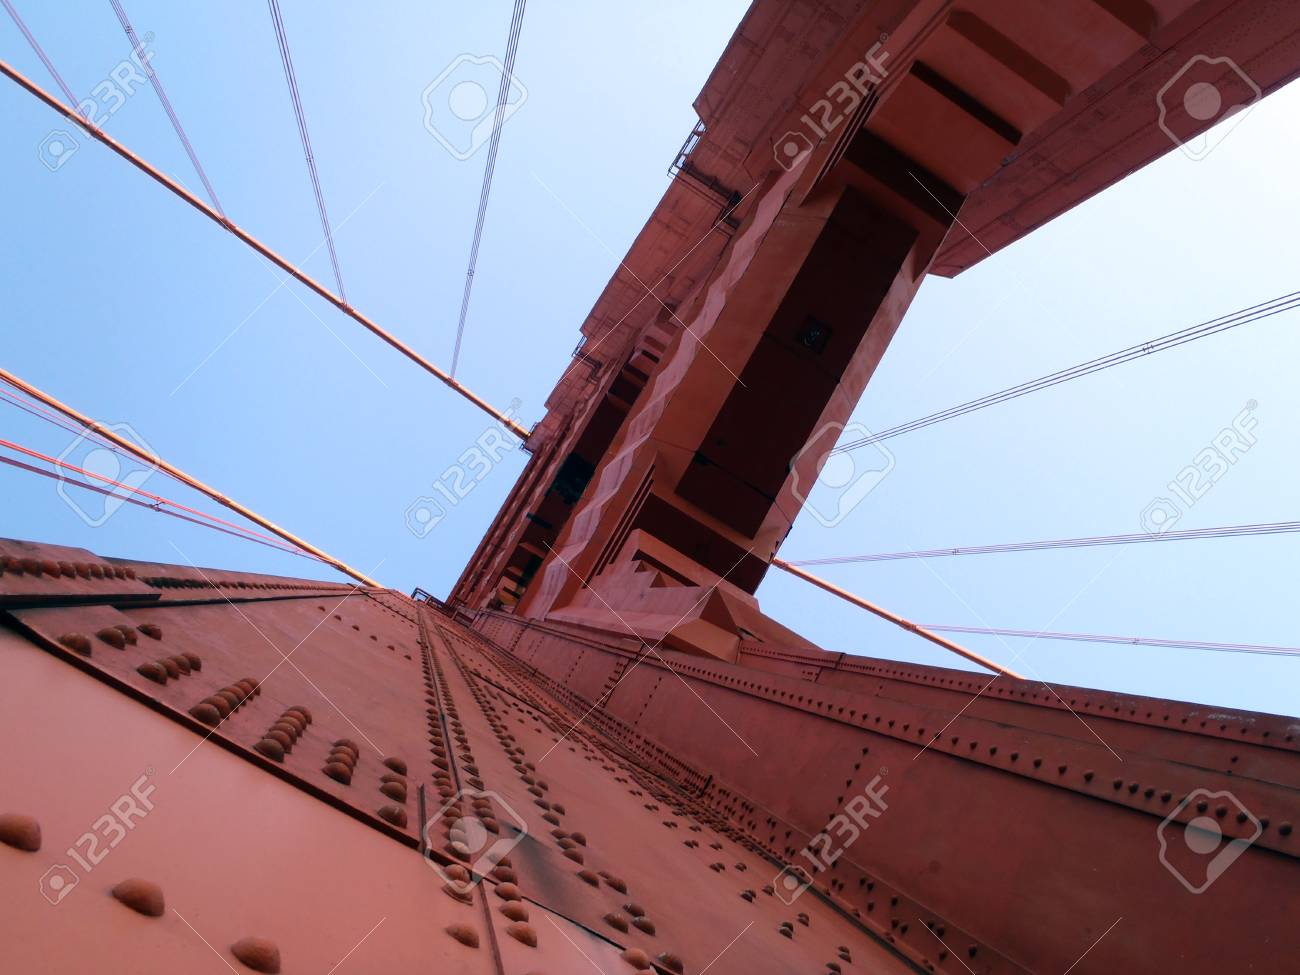 Upward Perspective Of Art Deco Tower And Supporting Cables On ...